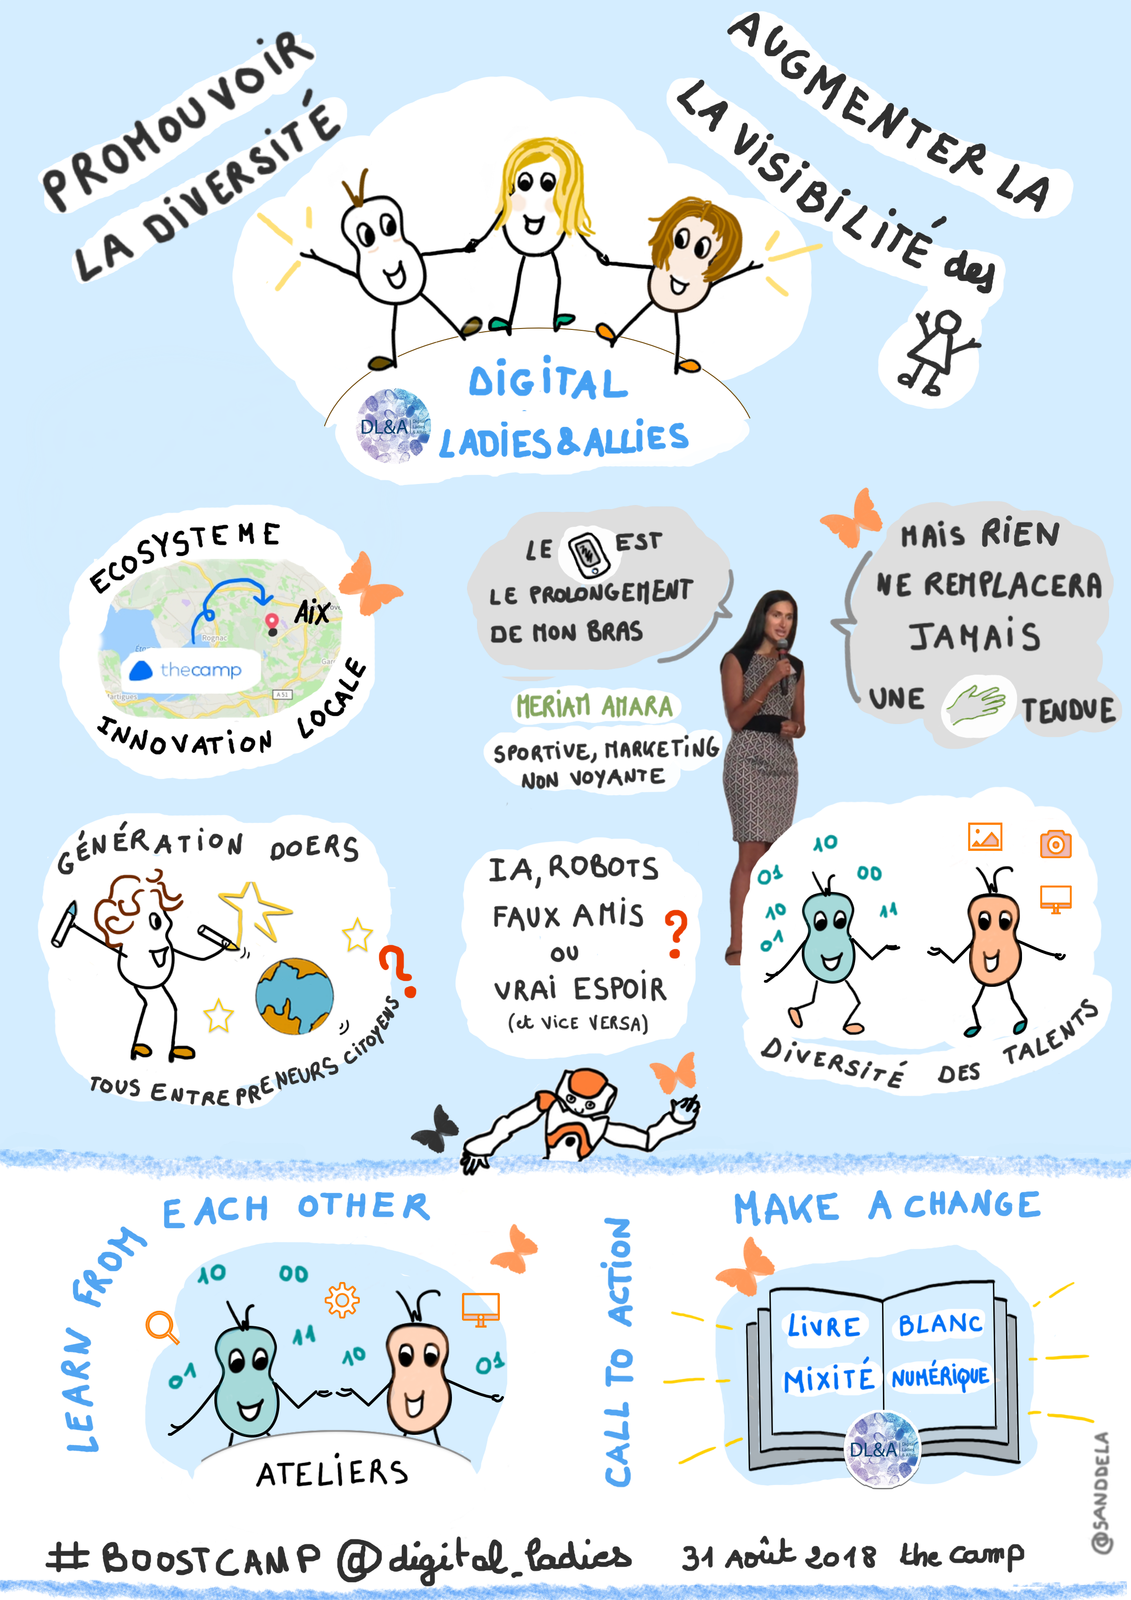 Digital Ladies BoostCamp Diversité the camp Aix Sketchnote Mère et Fille 2.0 - Sandrine Delage